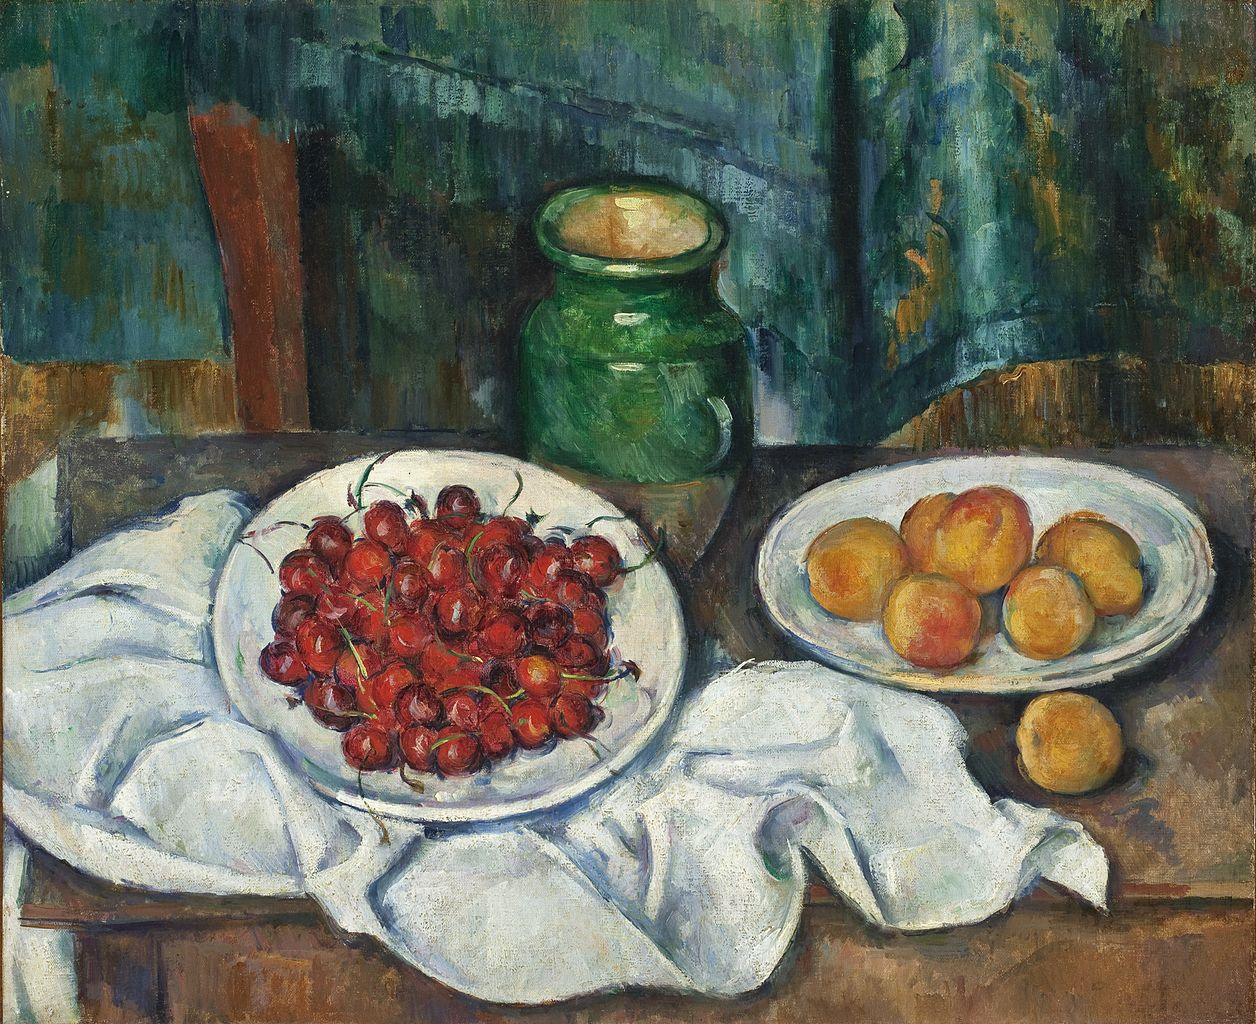 Paul Cezanne - Still Life with Cherries and Peaches, 1885-1887.